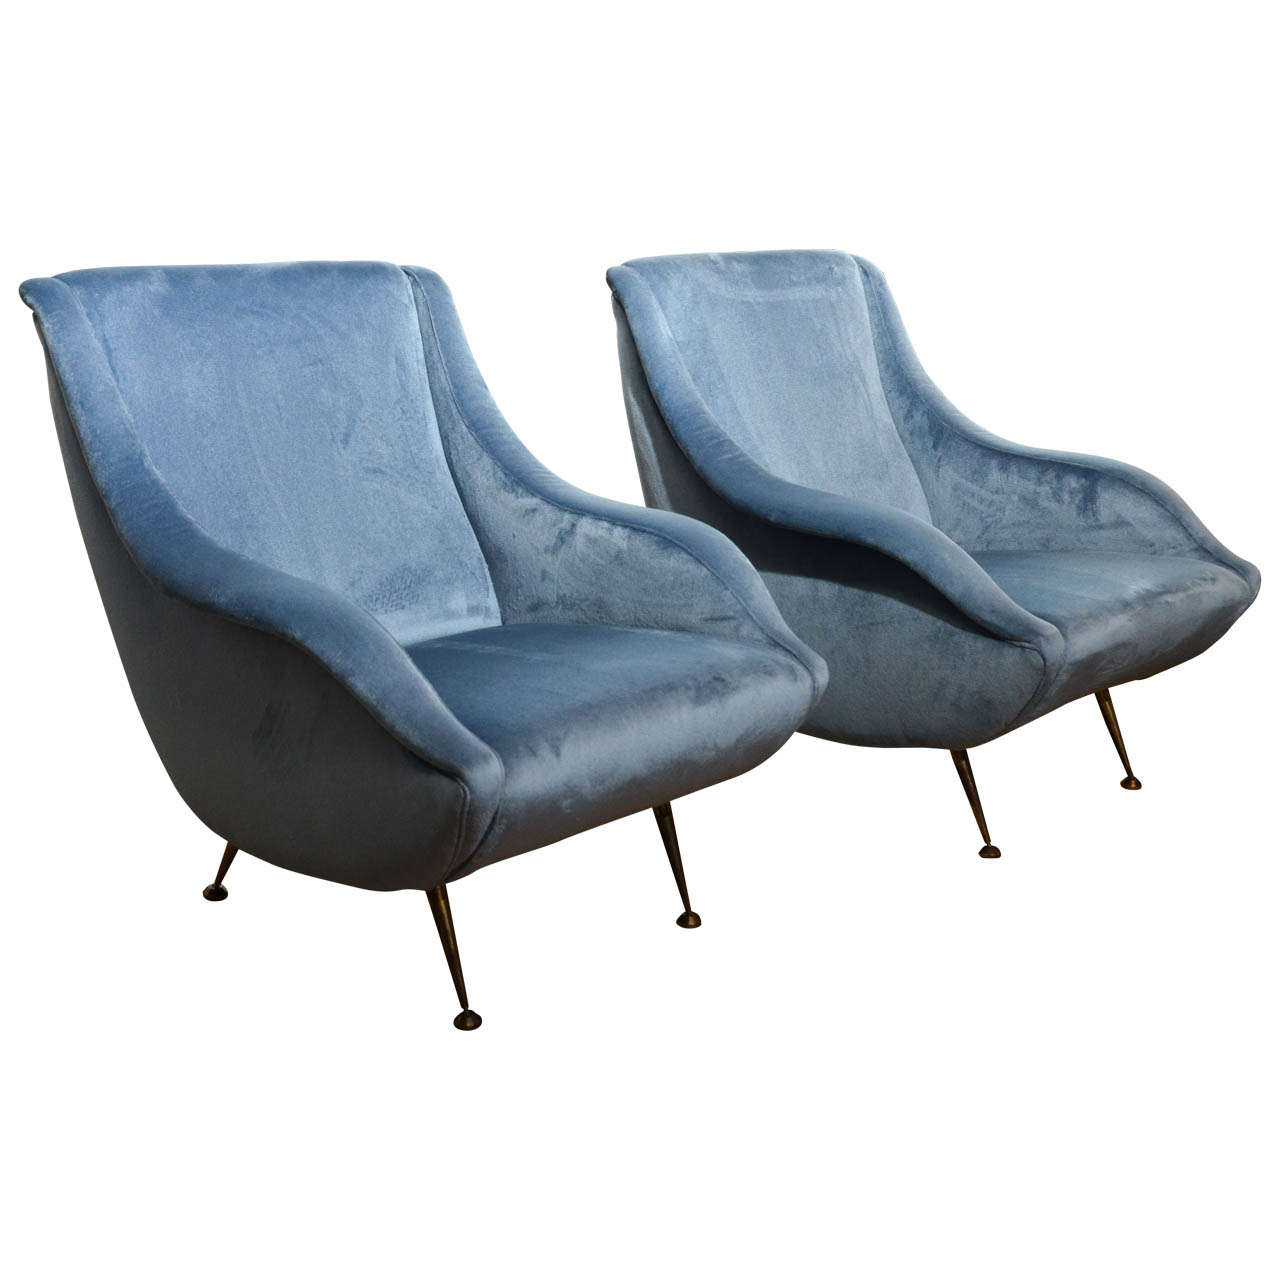 Italian Mid Century Sky Blue Velvet Armchairs In The Style Of Gio Ponti For  Sale